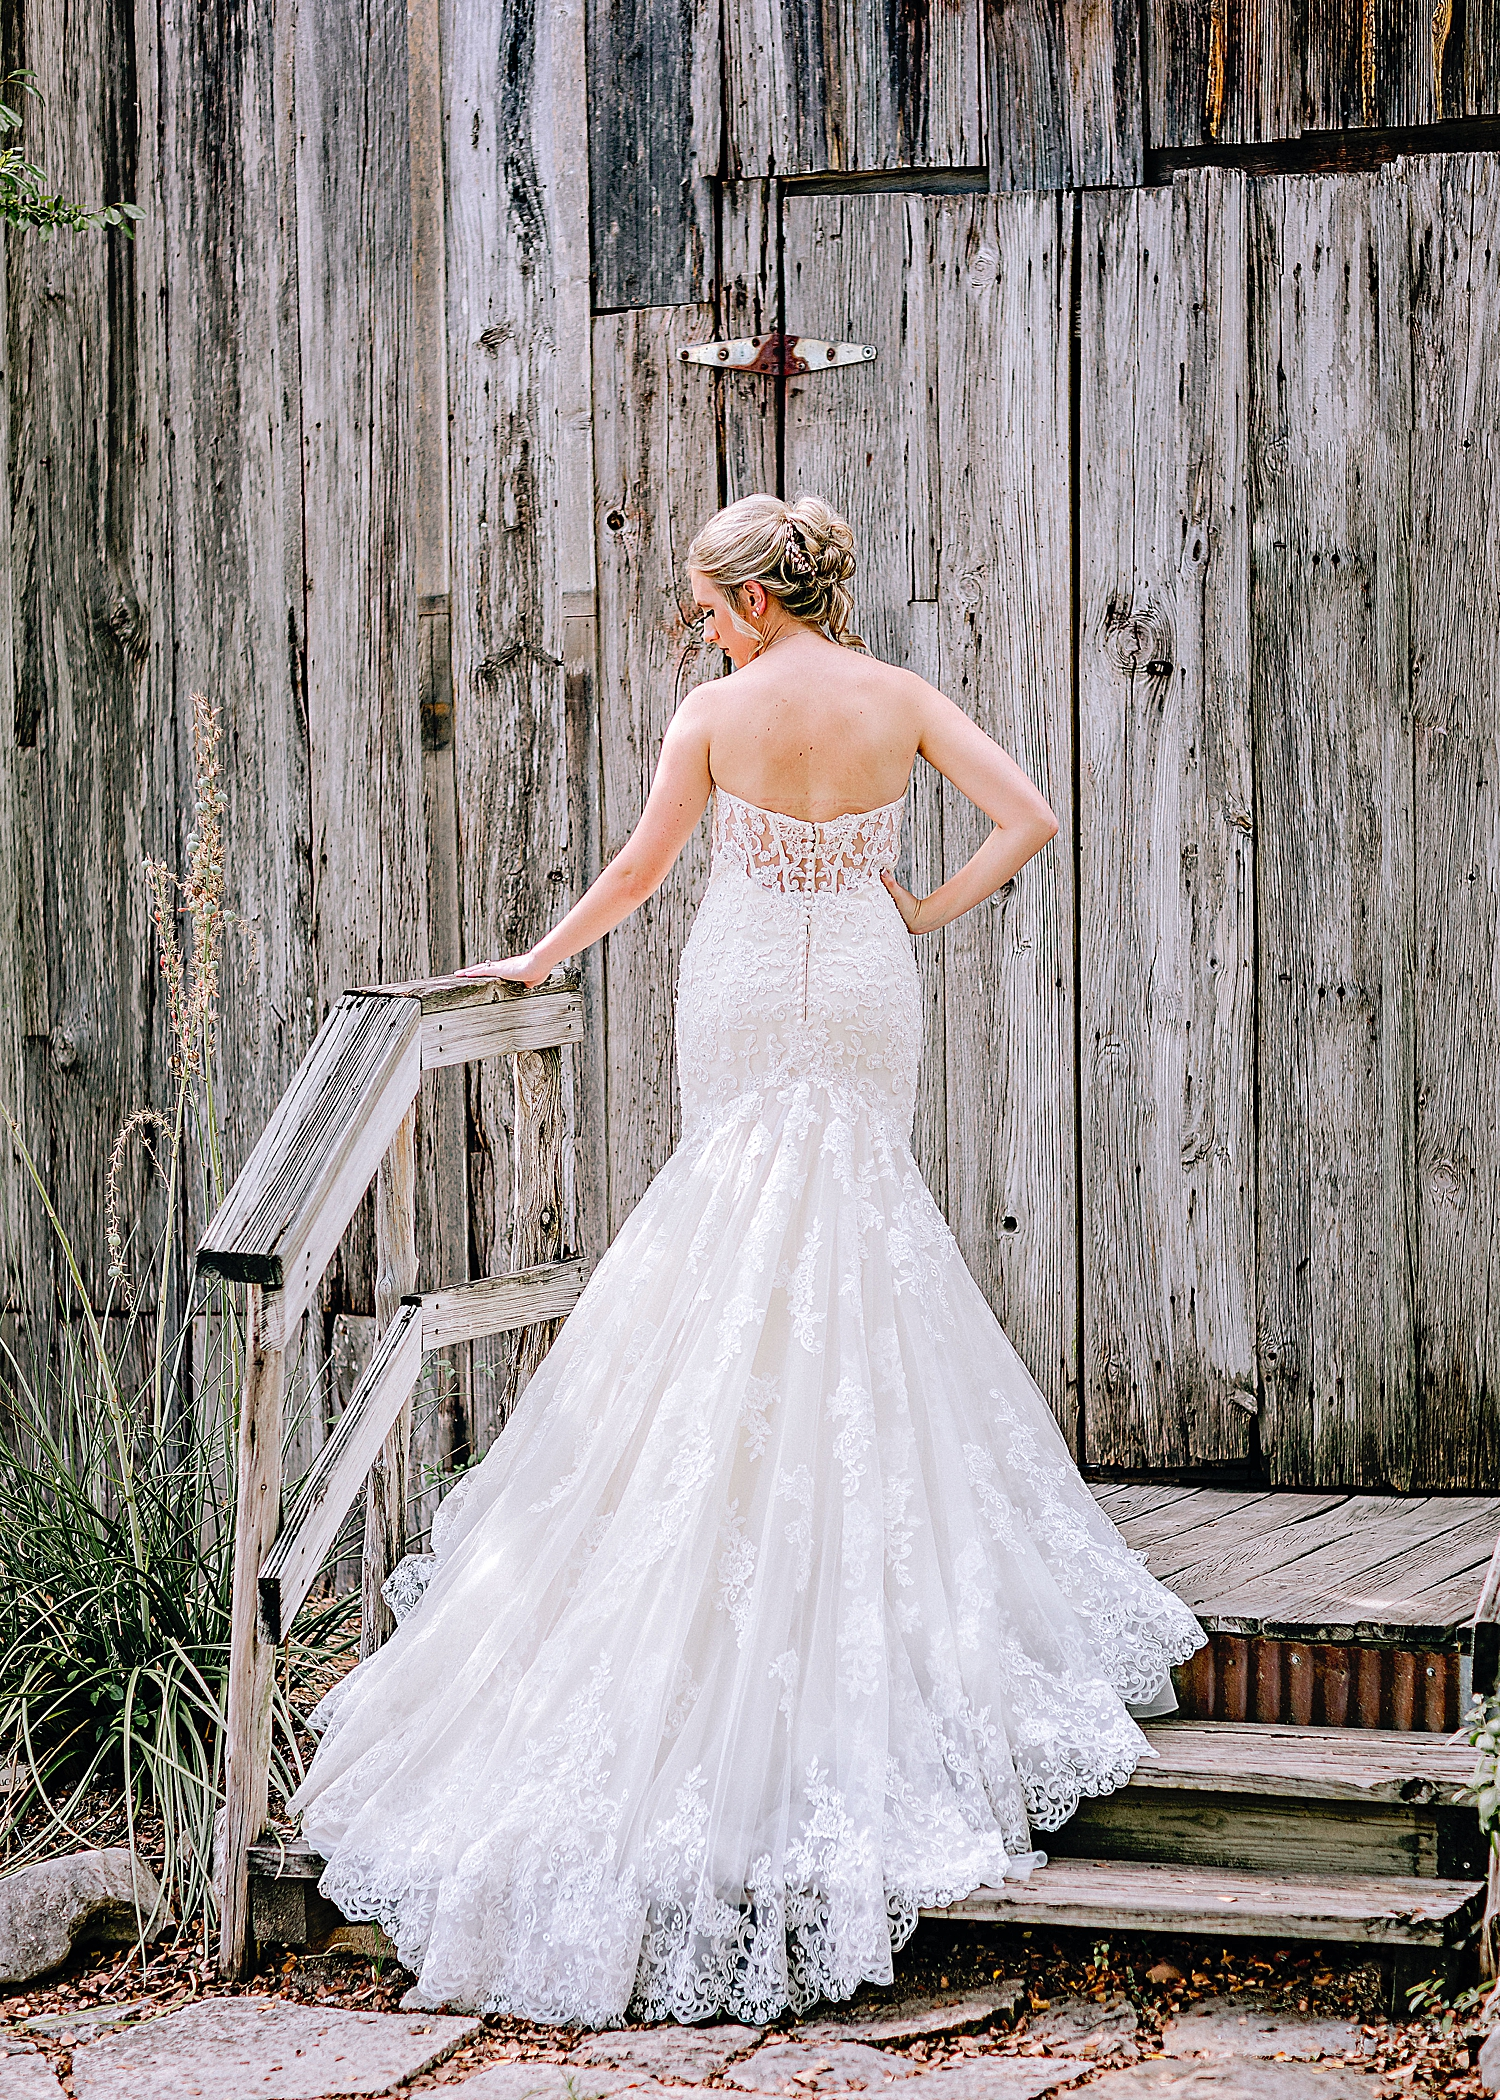 Carly-Barton-Photography-Bridal-Photos-Gruene-Rustic-New-Braunfels-Wedding-Photographer_0001.jpg